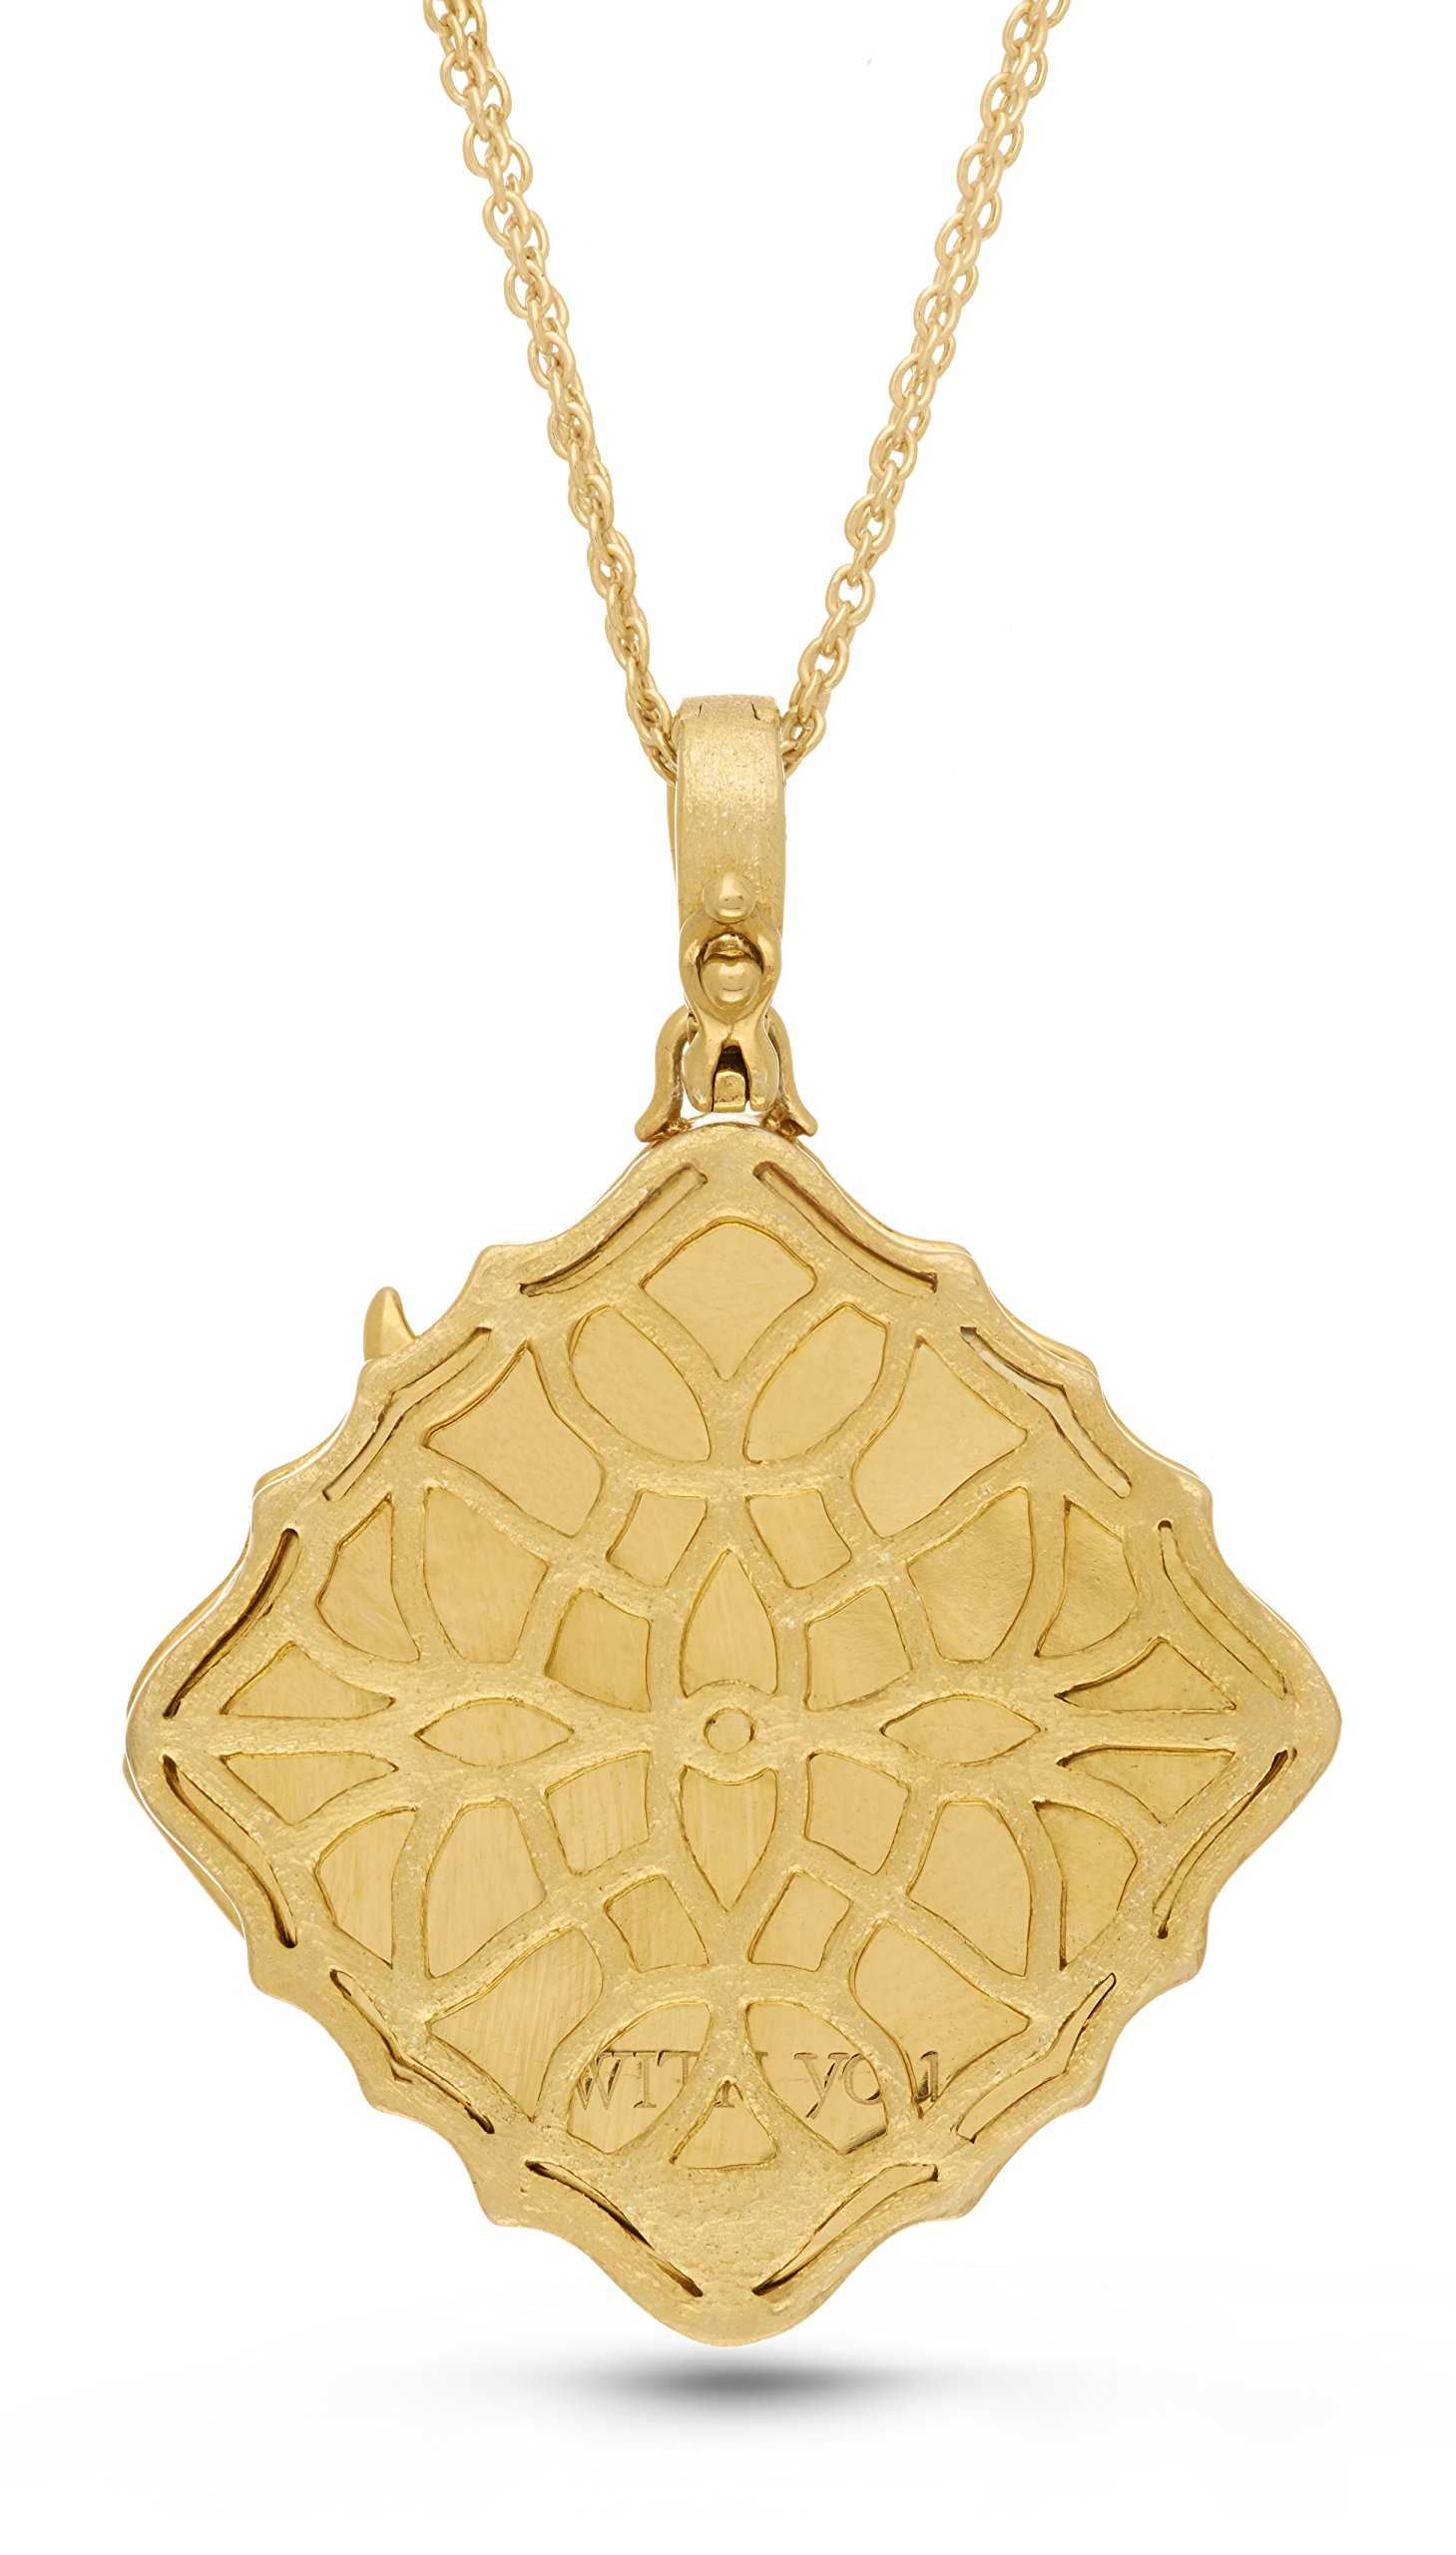 With You Lockets Yellow Gold-Diamond-Square-Custom Photo Locket Necklace-22-inch chain-The Mimi by by With You Lockets (Image #3)